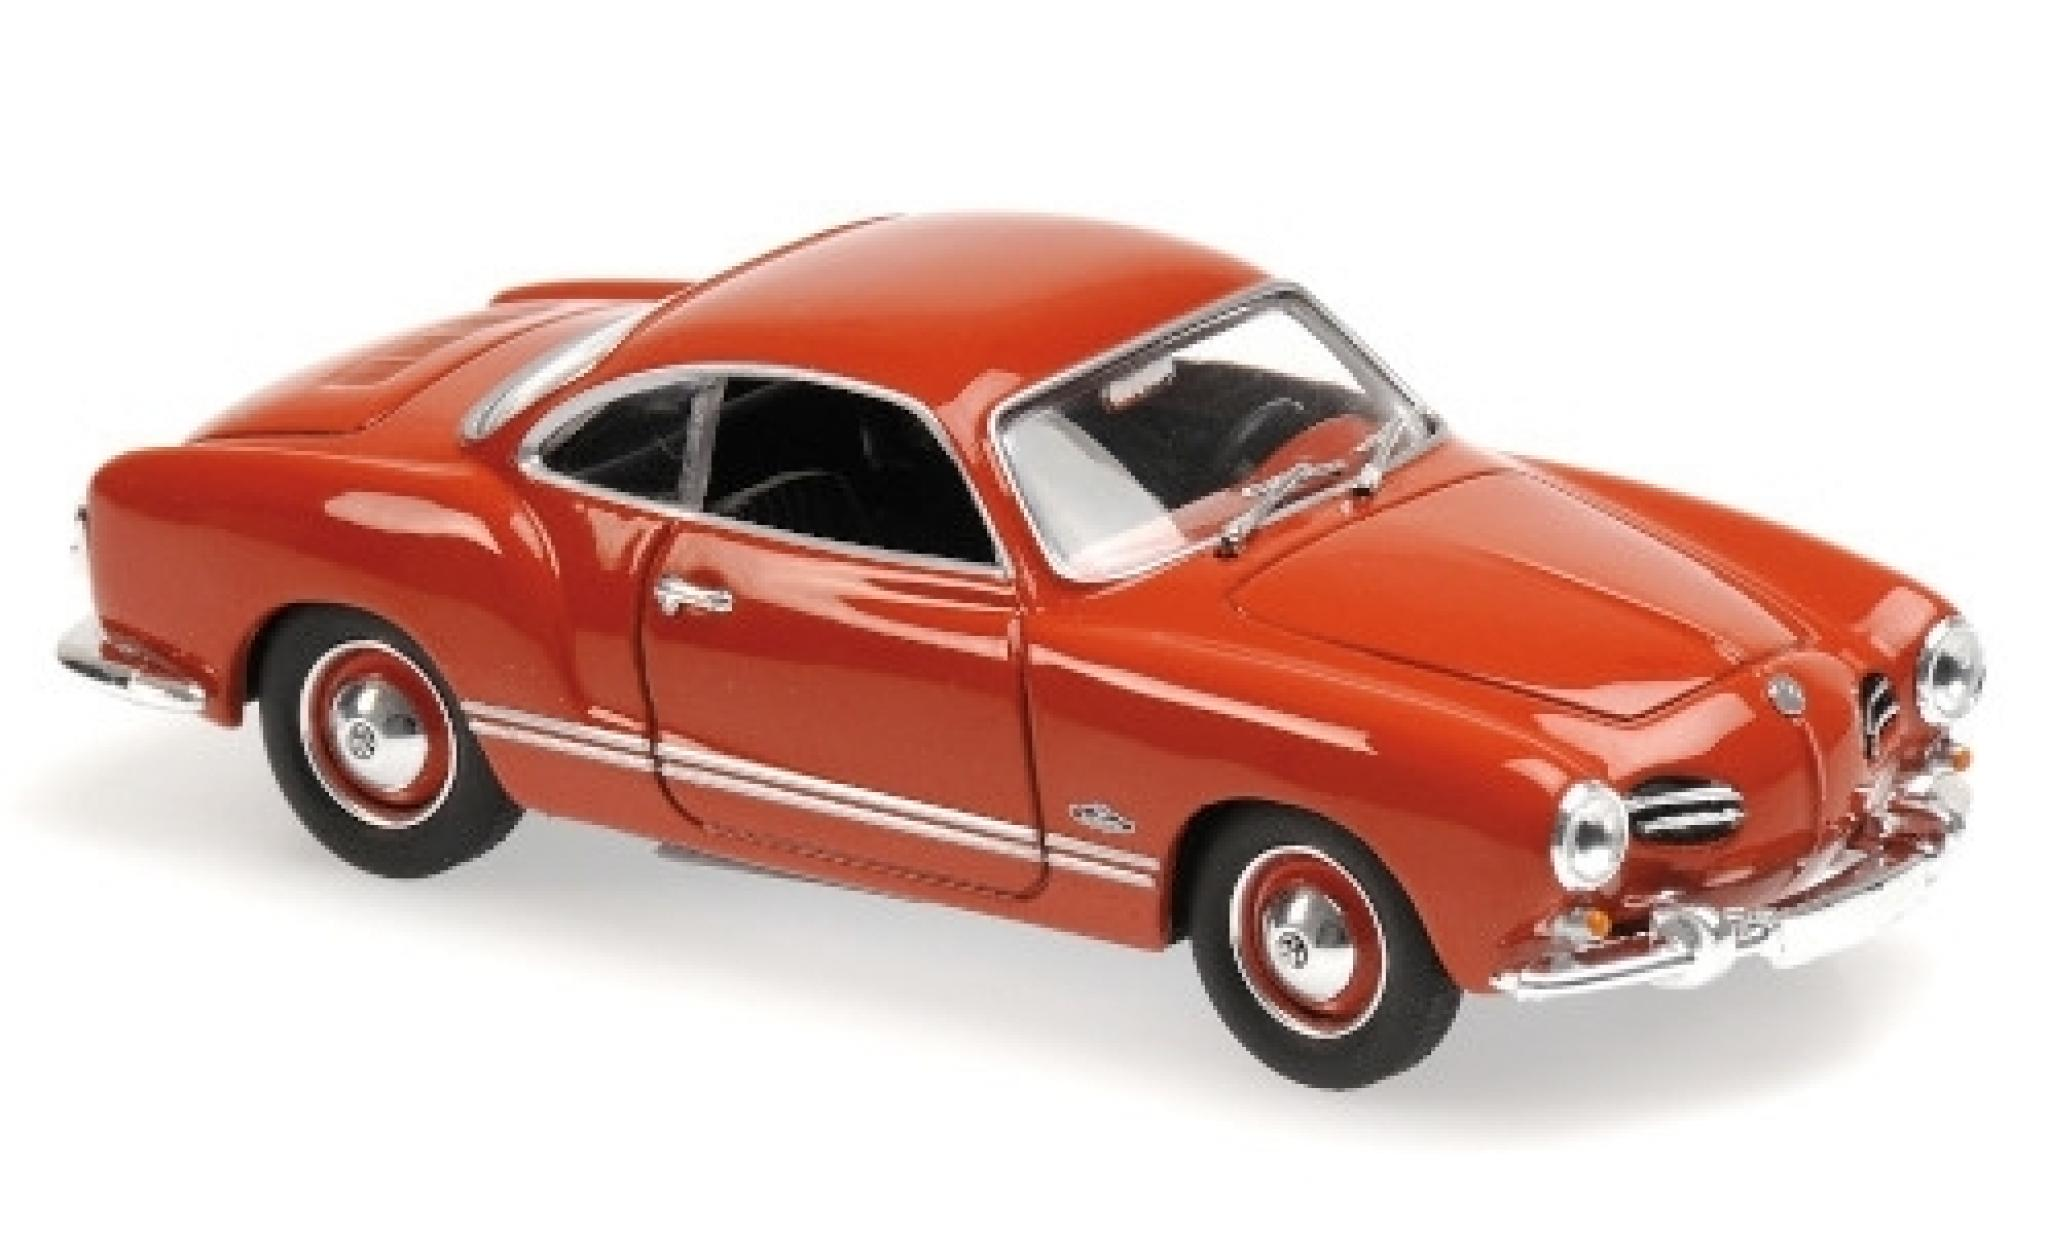 Volkswagen Karmann 1/43 Maxichamps Ghia Coupe rouge 1955